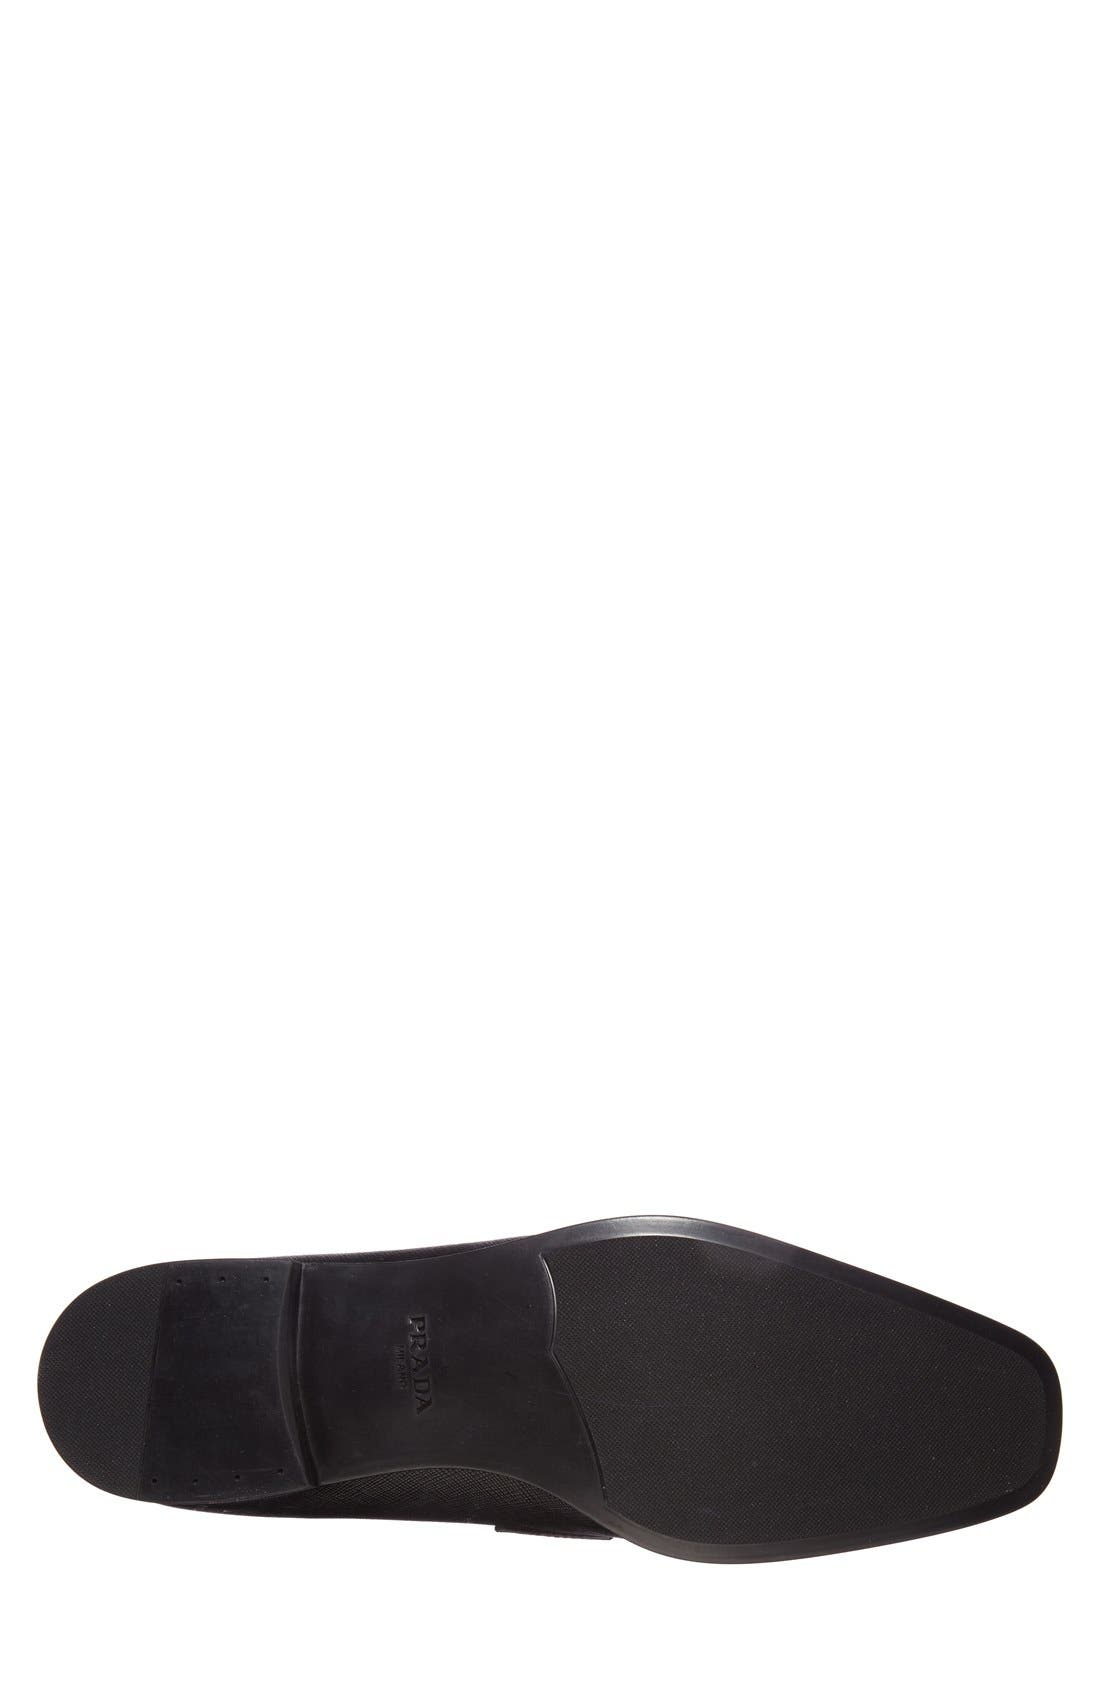 Saffiano Leather Bit Loafer,                             Alternate thumbnail 4, color,                             Nero Leather